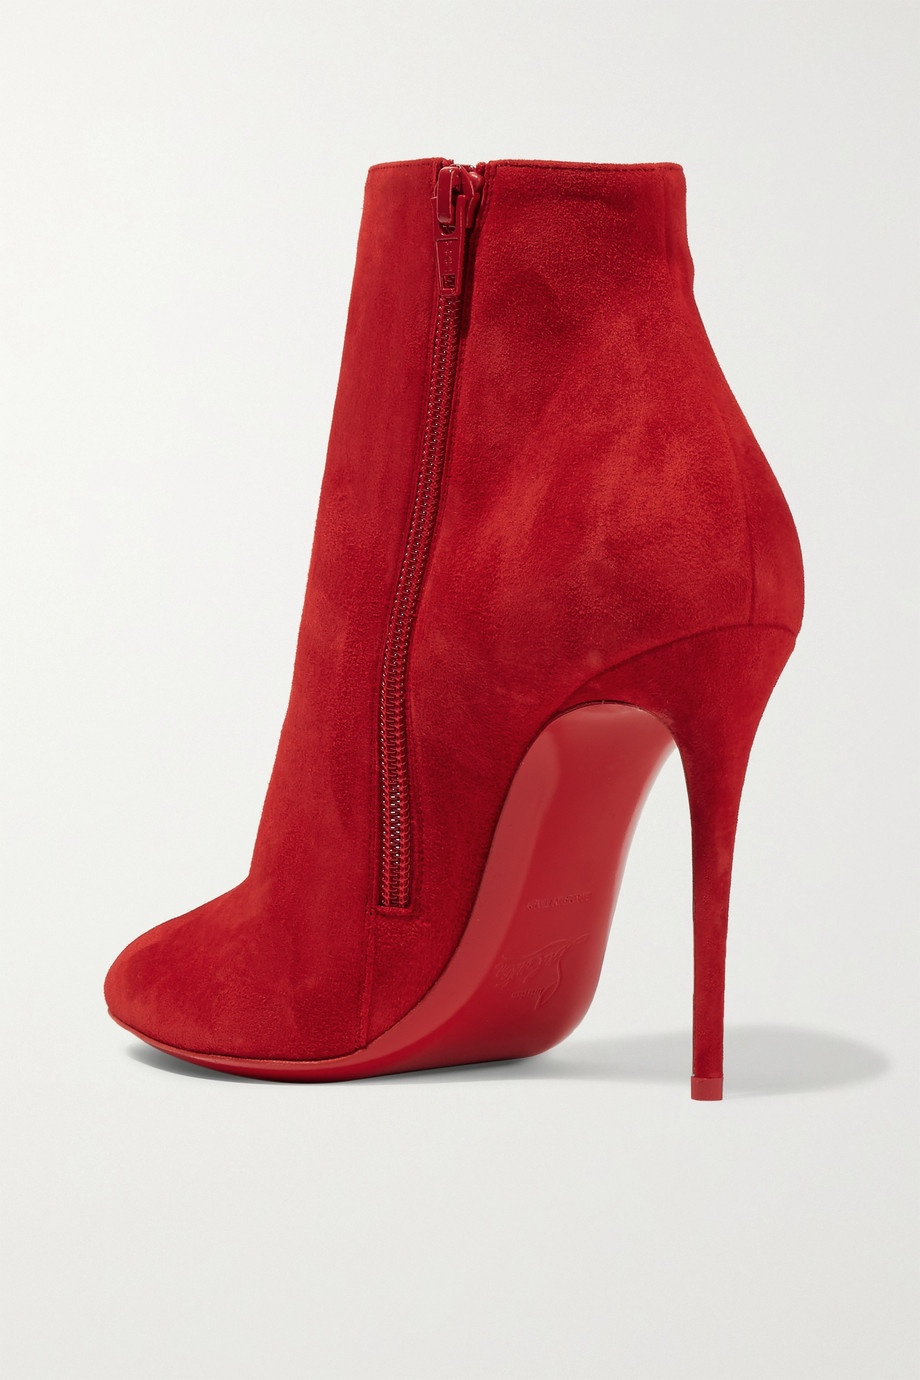 07362bc1b08e Christian Louboutin Eloise 100 suede ankle boots